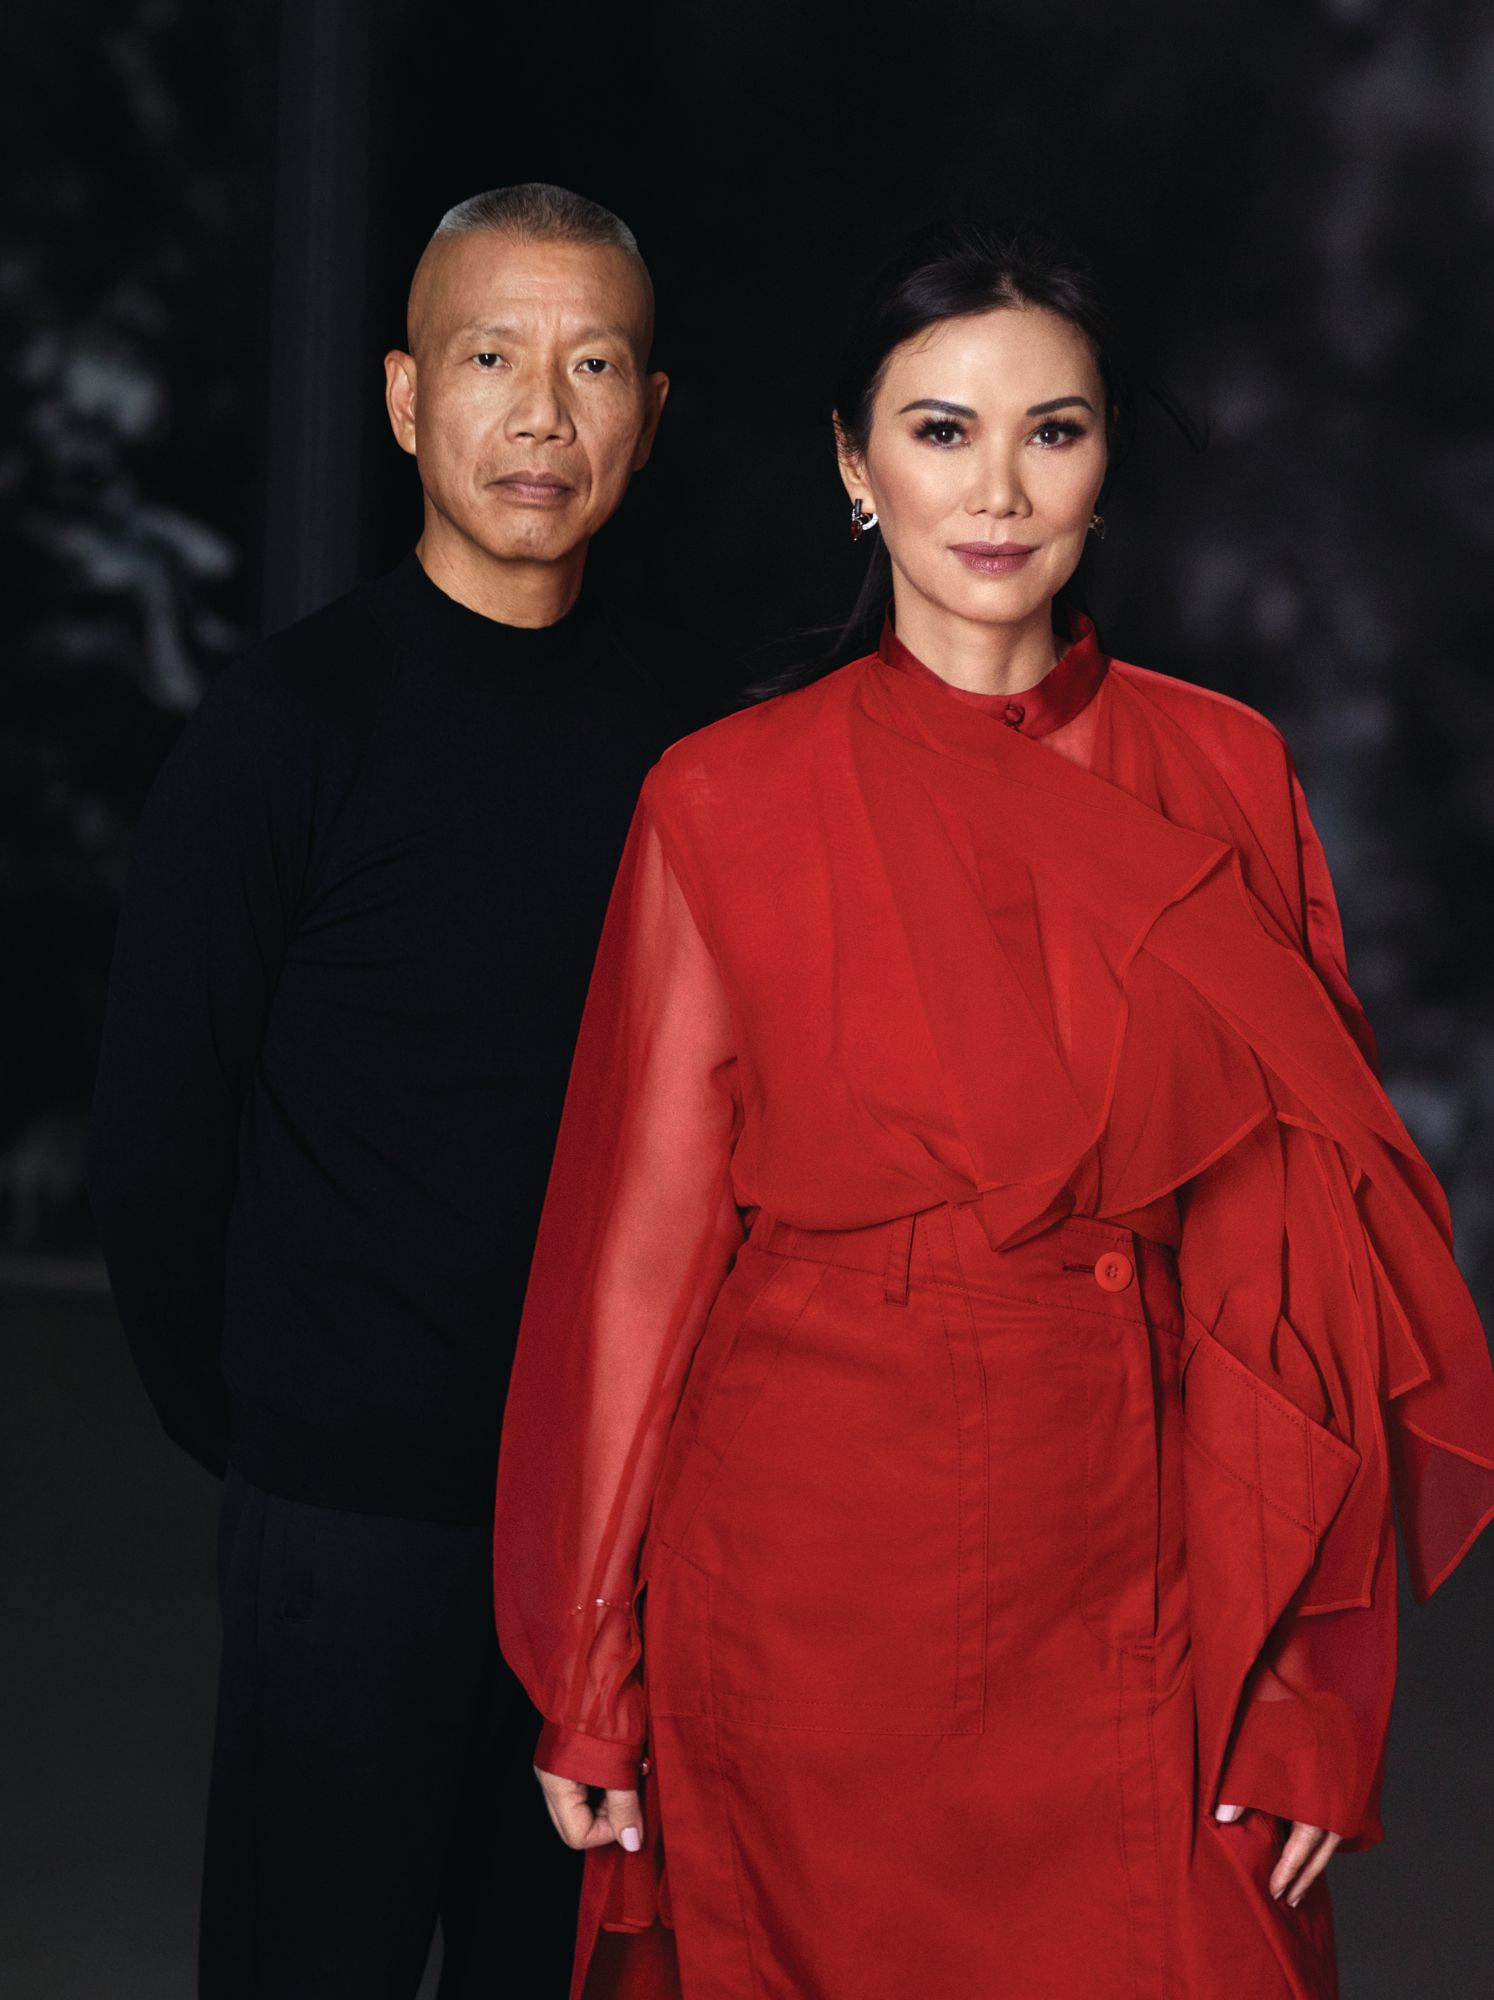 Wendi Murdoch And Cai Guo-Qiang On Friendship, Fireworks And The Future